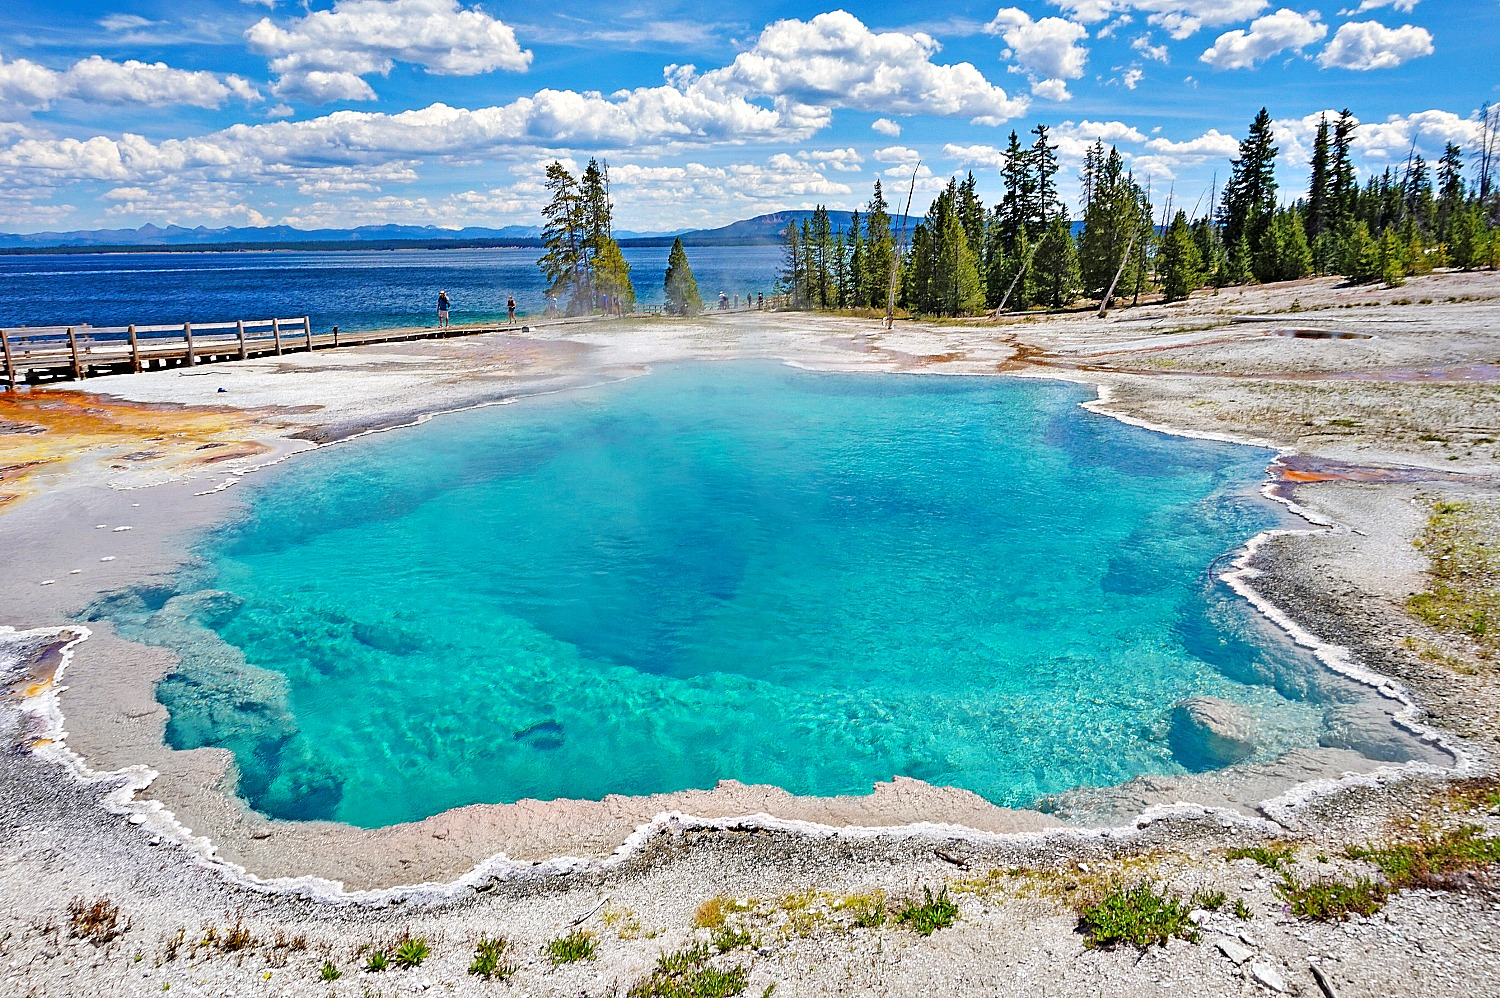 West Thumb Geyser Basin for some reason does not attract many crowds but it is stunningly beautiful.